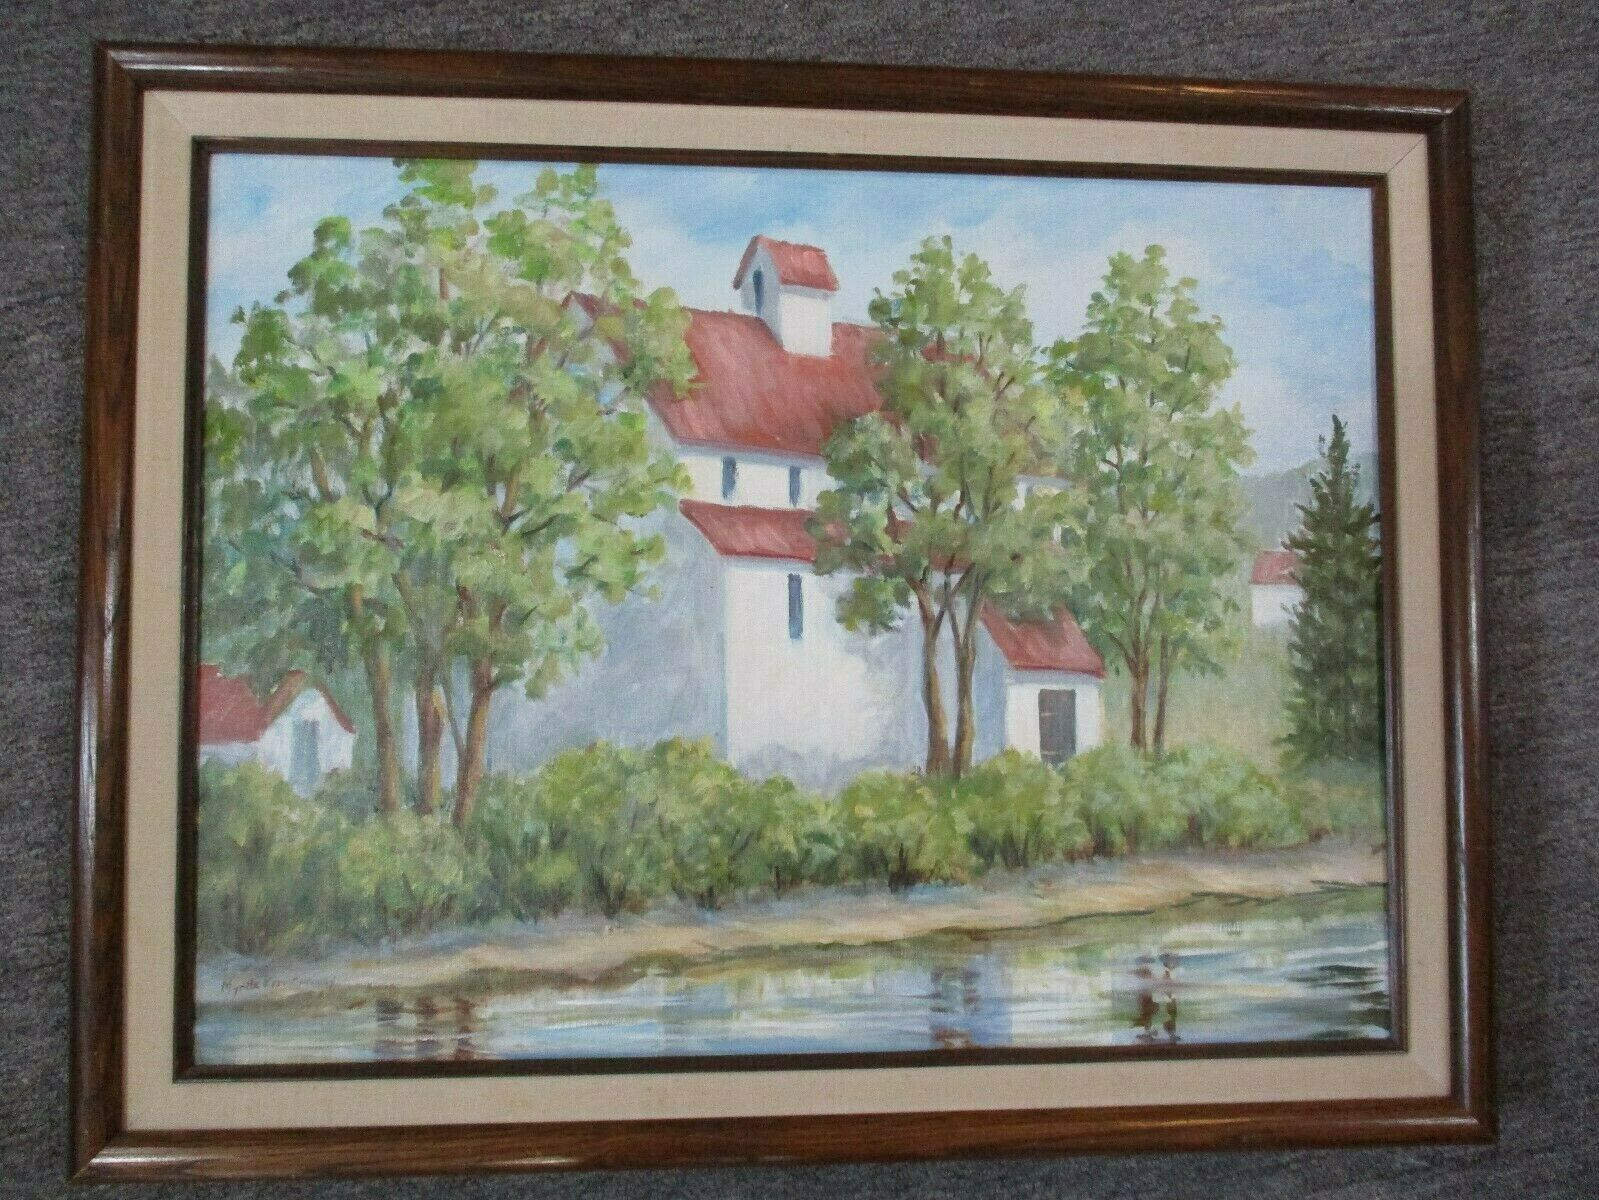 "Old Forge By Myrtle Kerr Conaway Framed Oil Painting 27.5"" X 21.5"""